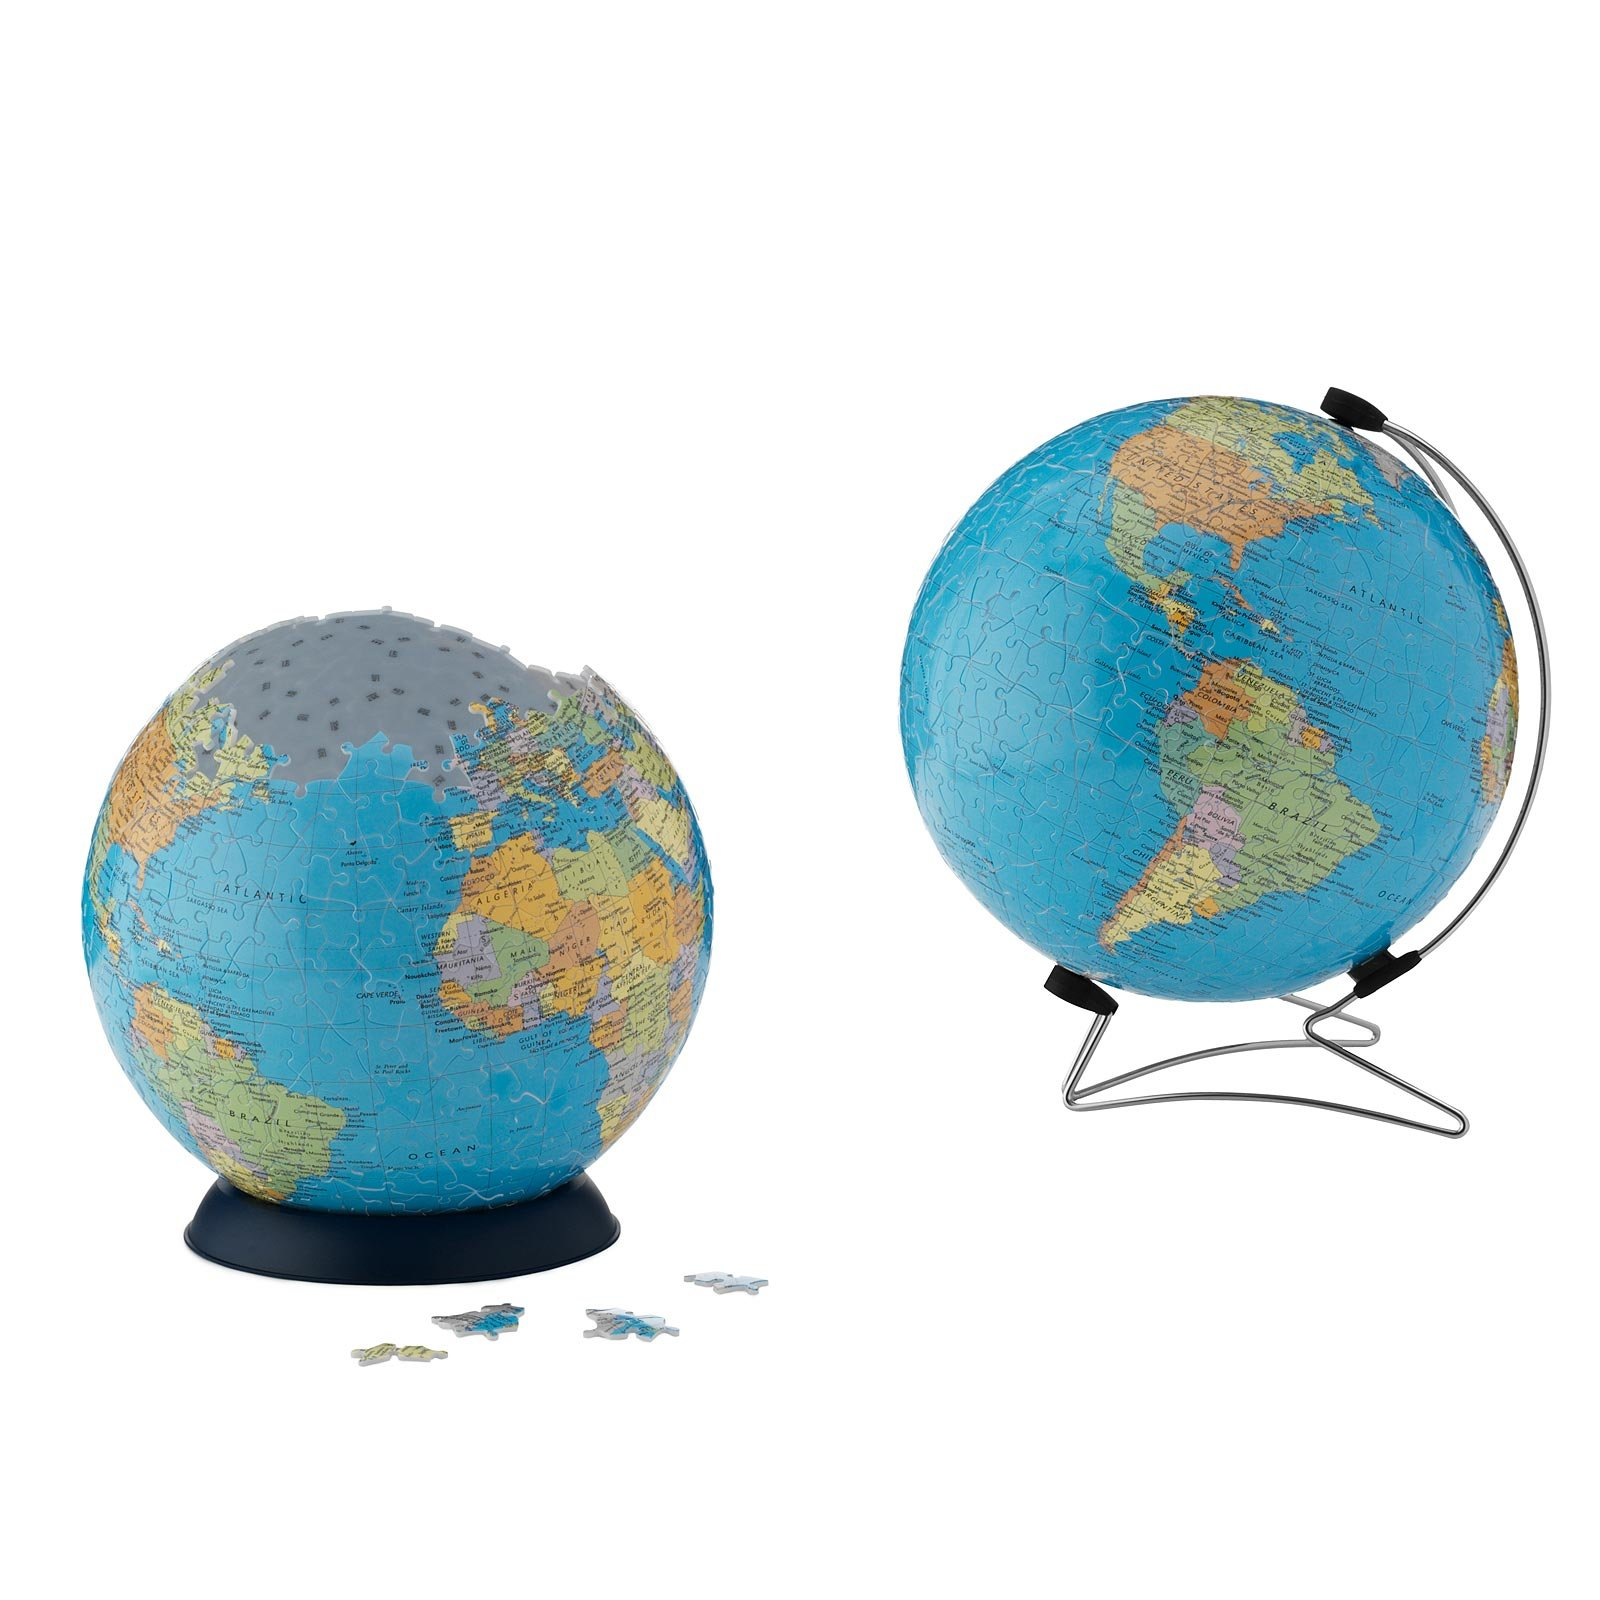 Puzzle ball the earth 3d globe puzzle world map puzzleball puzzle ball the earth 1 thumbnail gumiabroncs Choice Image